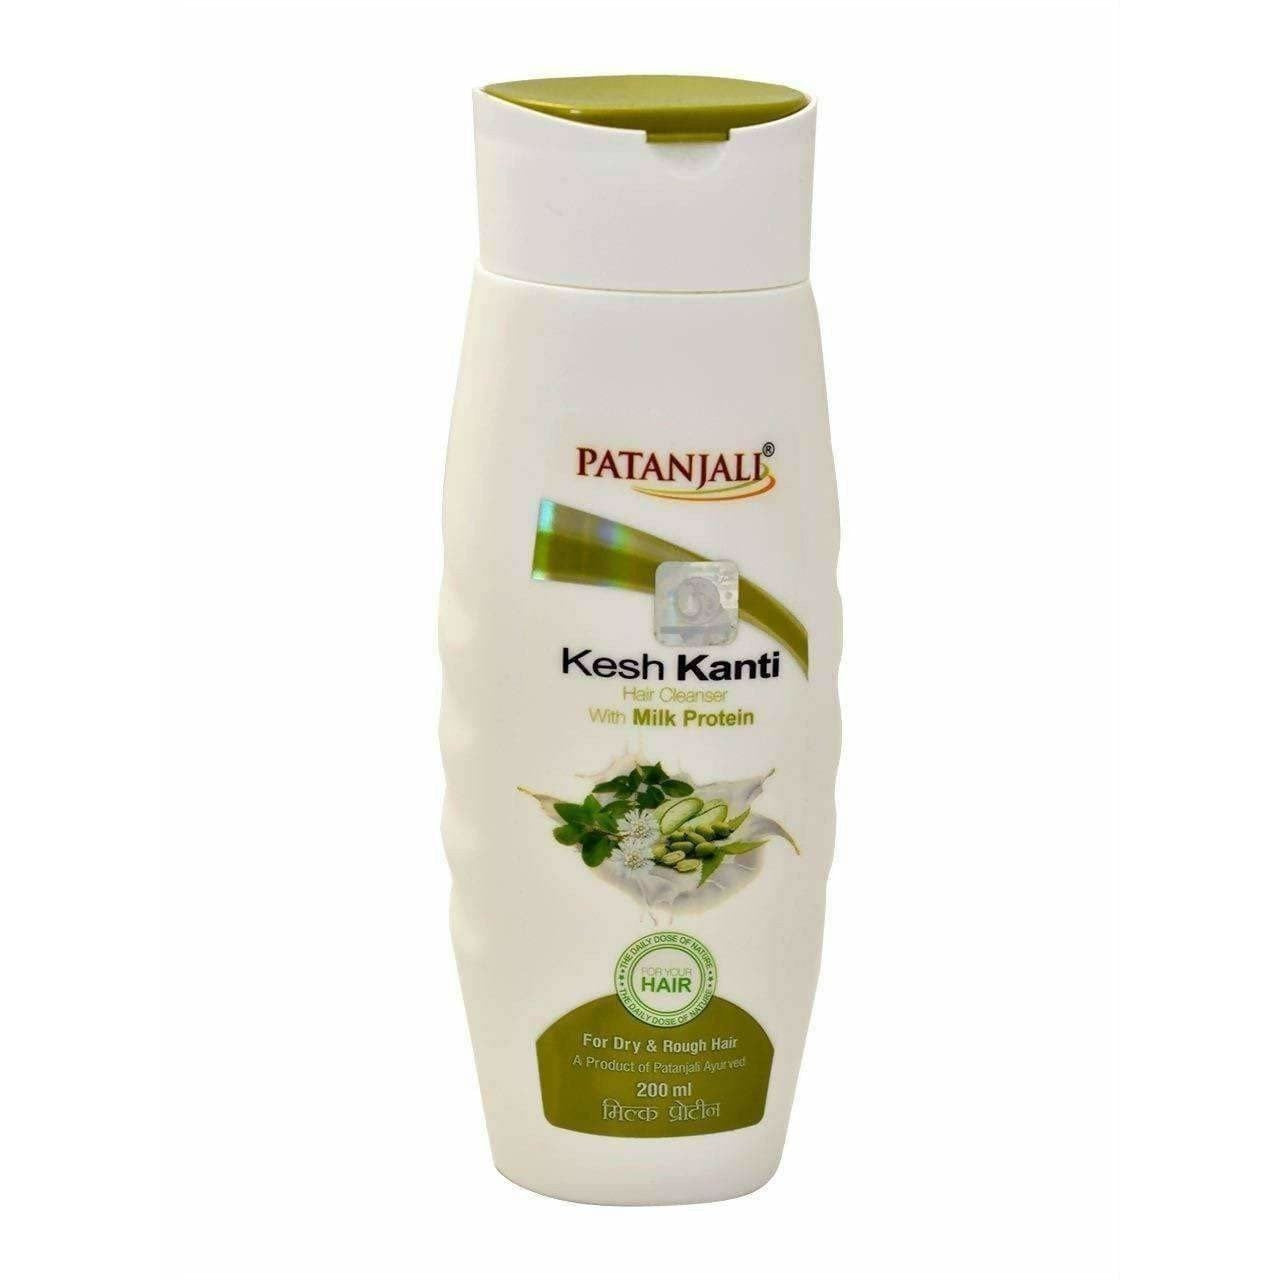 Patanjali Kesh Kanti Milk Protein Hair Cleanser(200 ML)